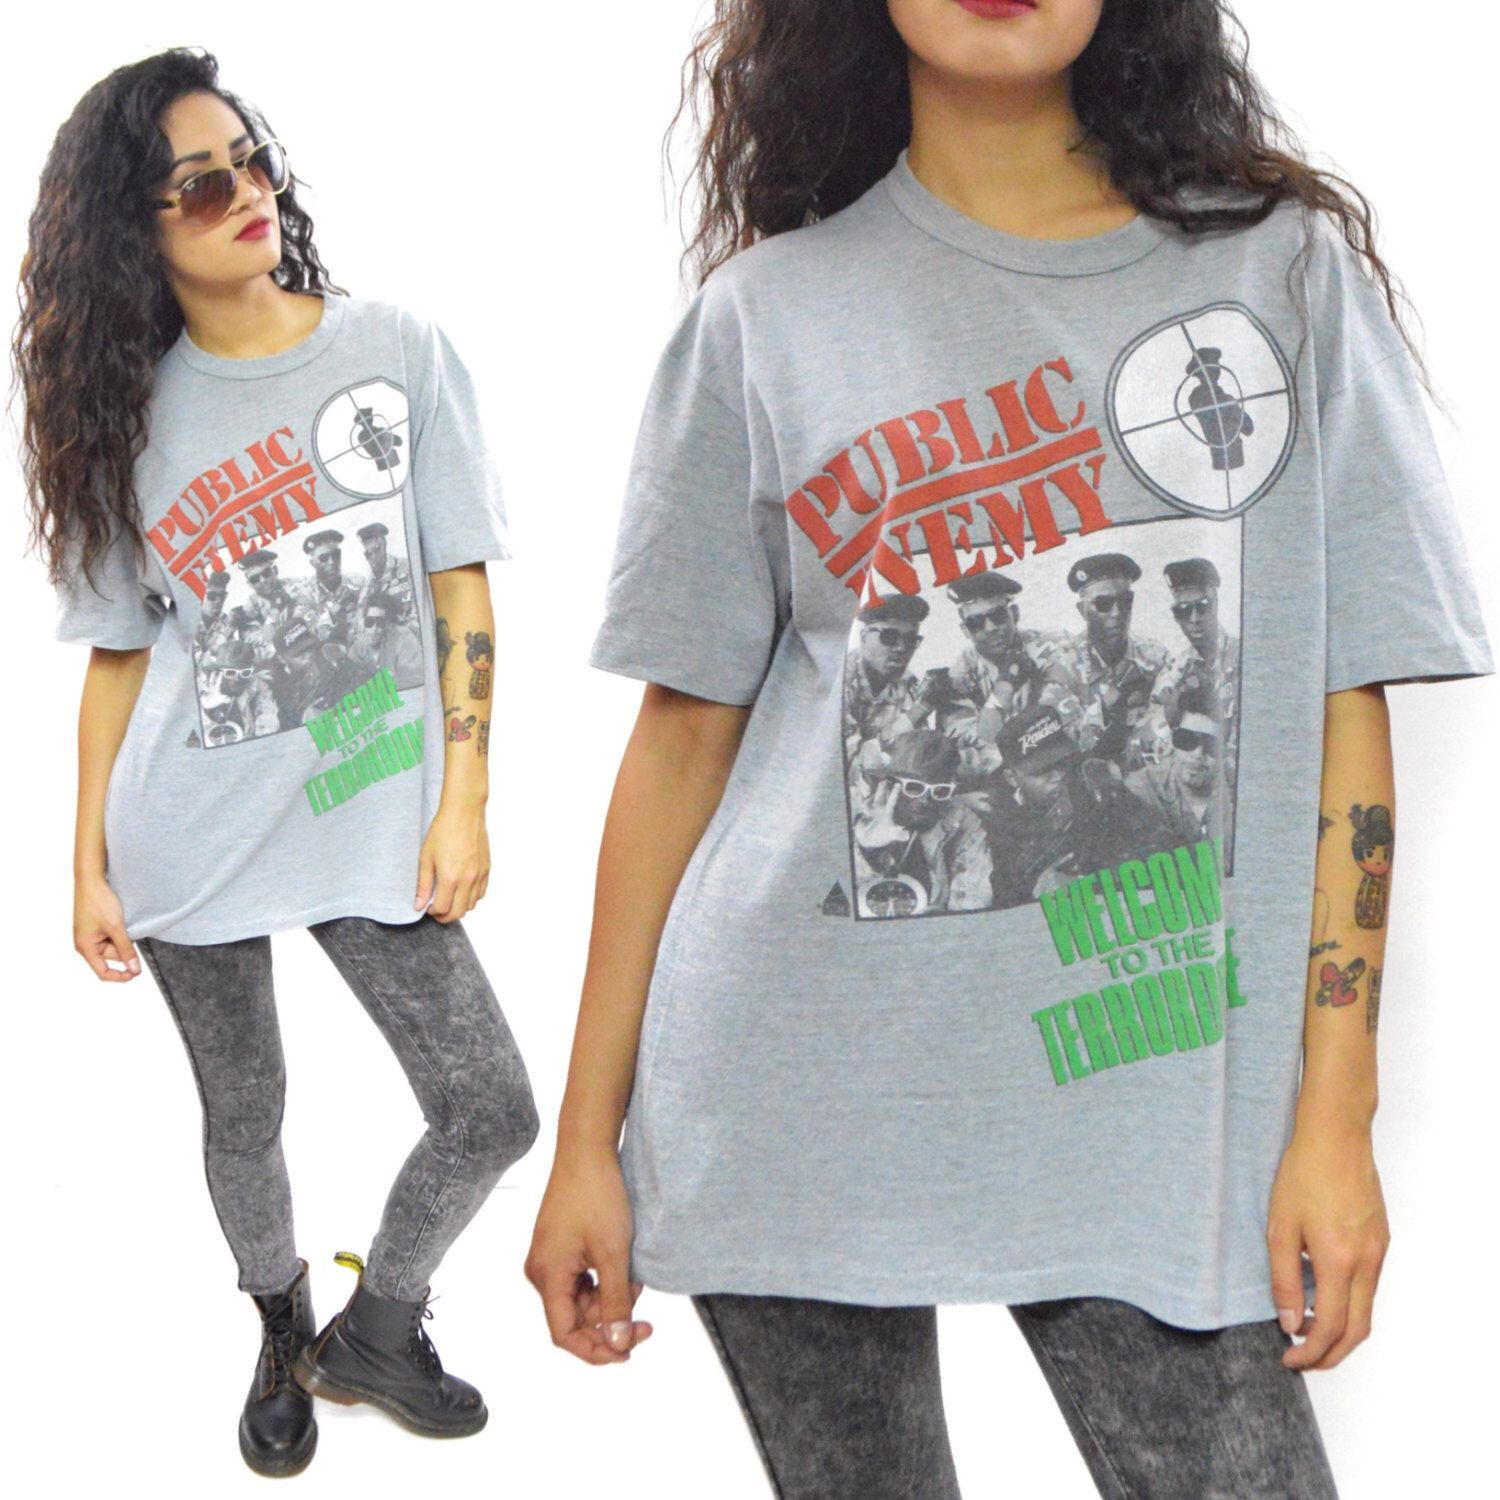 Vintage 90s Public Enemy Welcome to the Terrordome T Shirt Sz L by Dopedoll on Etsy https://www.etsy.com/listing/234123211/vintage-90s-public-enemy-welcome-to-the